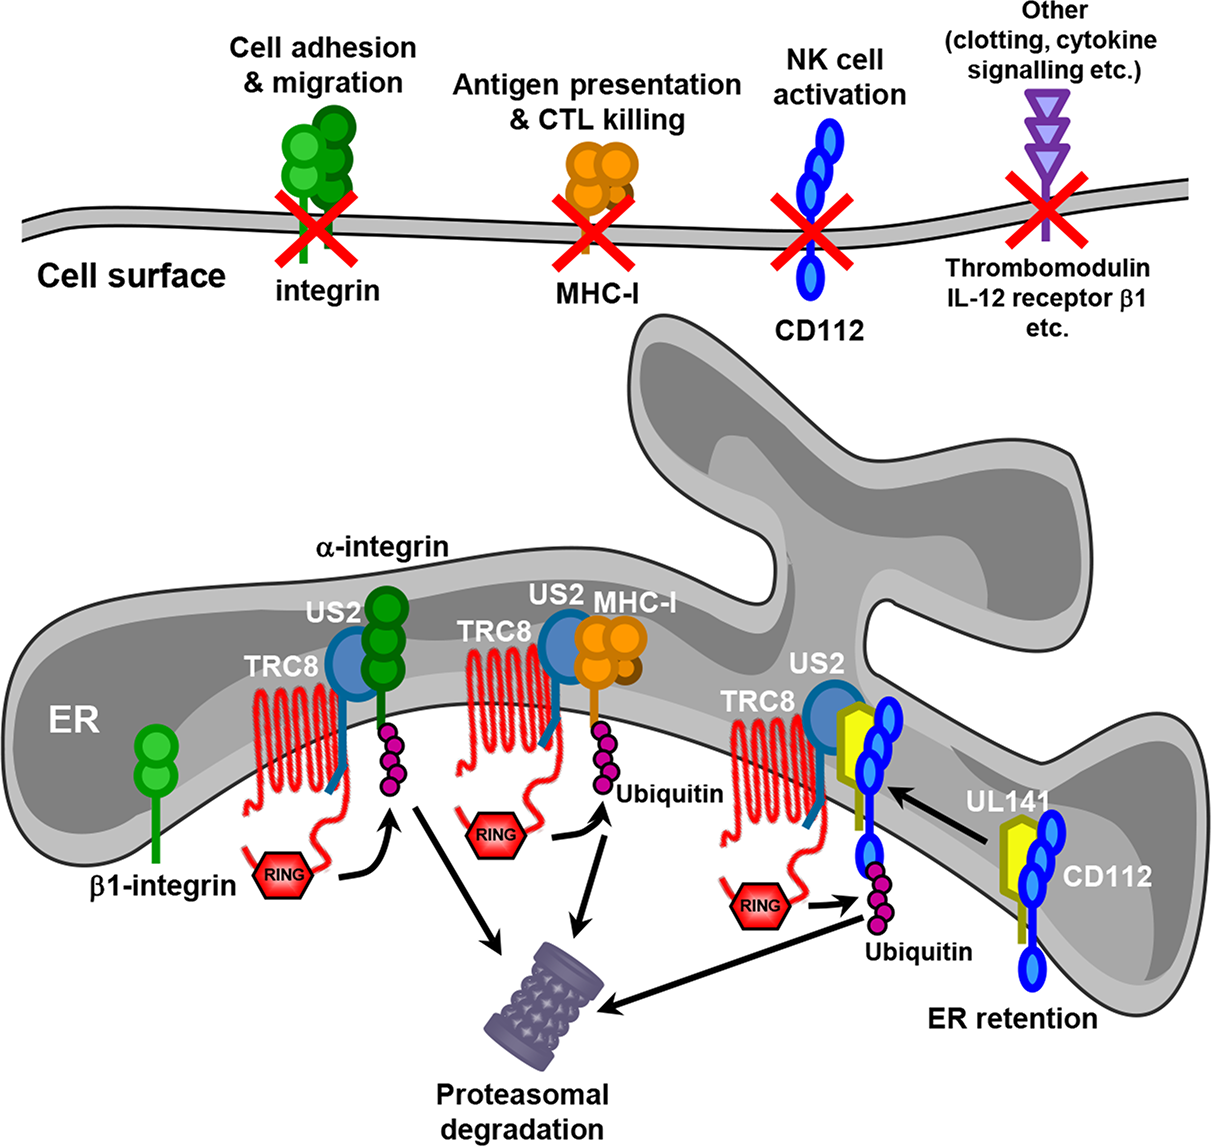 Model for US2 action in HCMV-infected cells.